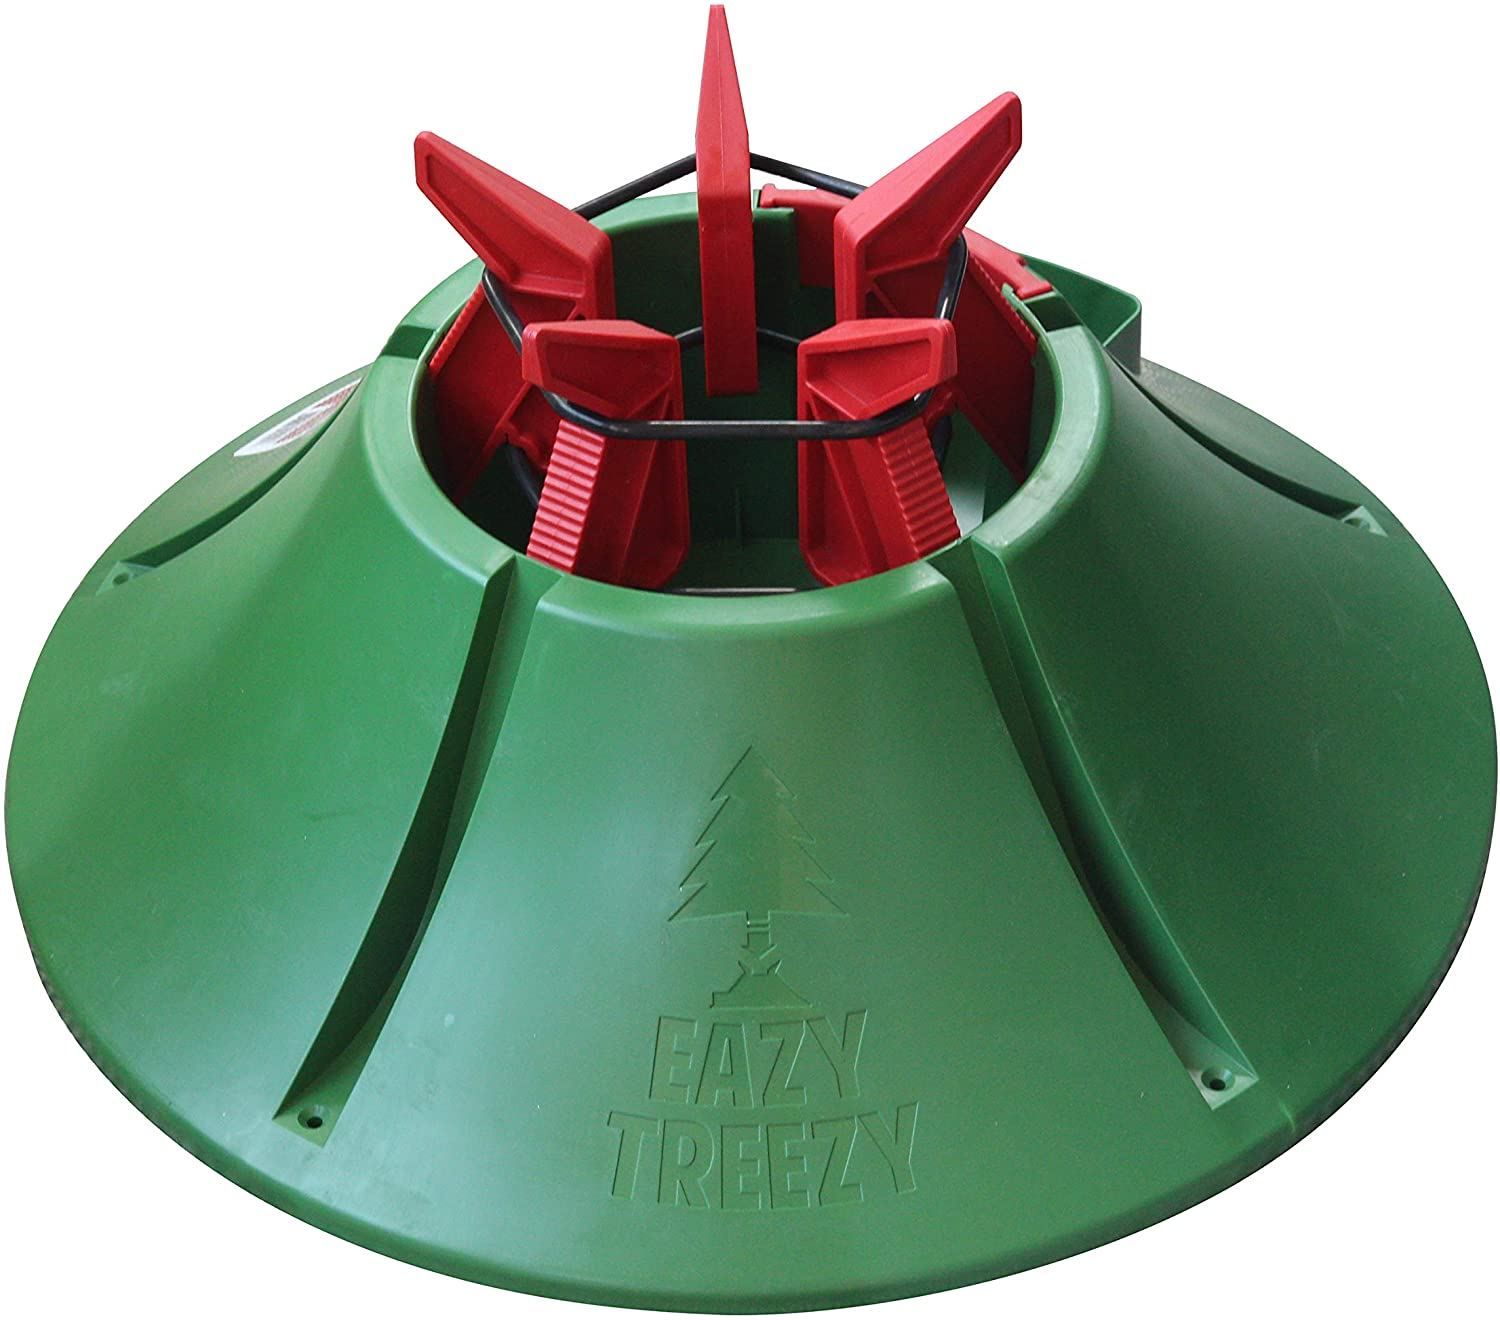 Allstar Innovations Eazy Treezy Drop-in Christmas Tree Stand, $39.99 @amazon.com